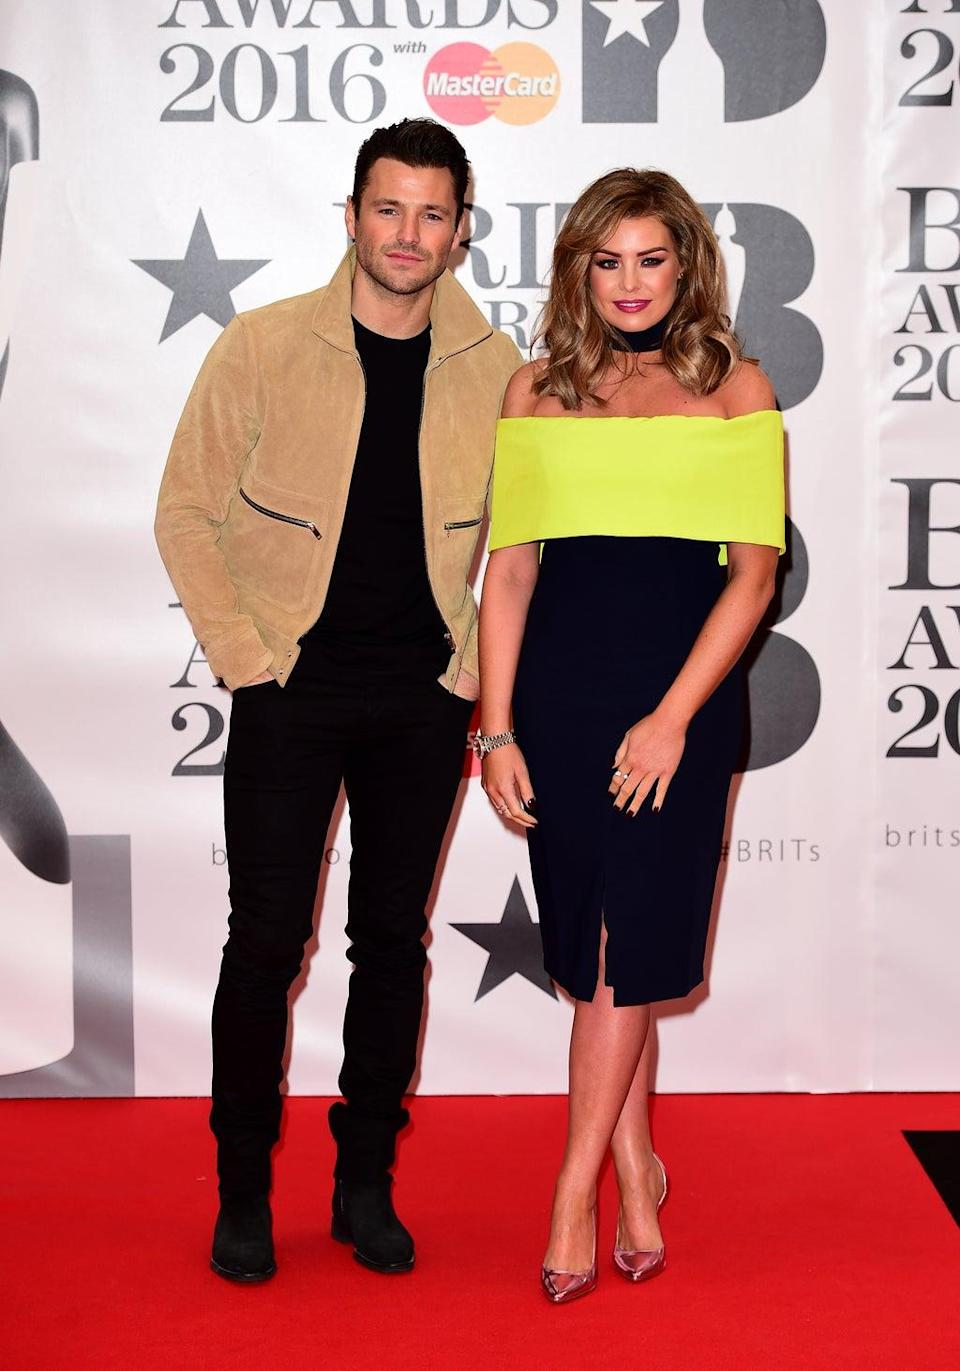 Mark and Jess Wright on the Brit Awards red carpet (Ian West/PA) (PA Archive)